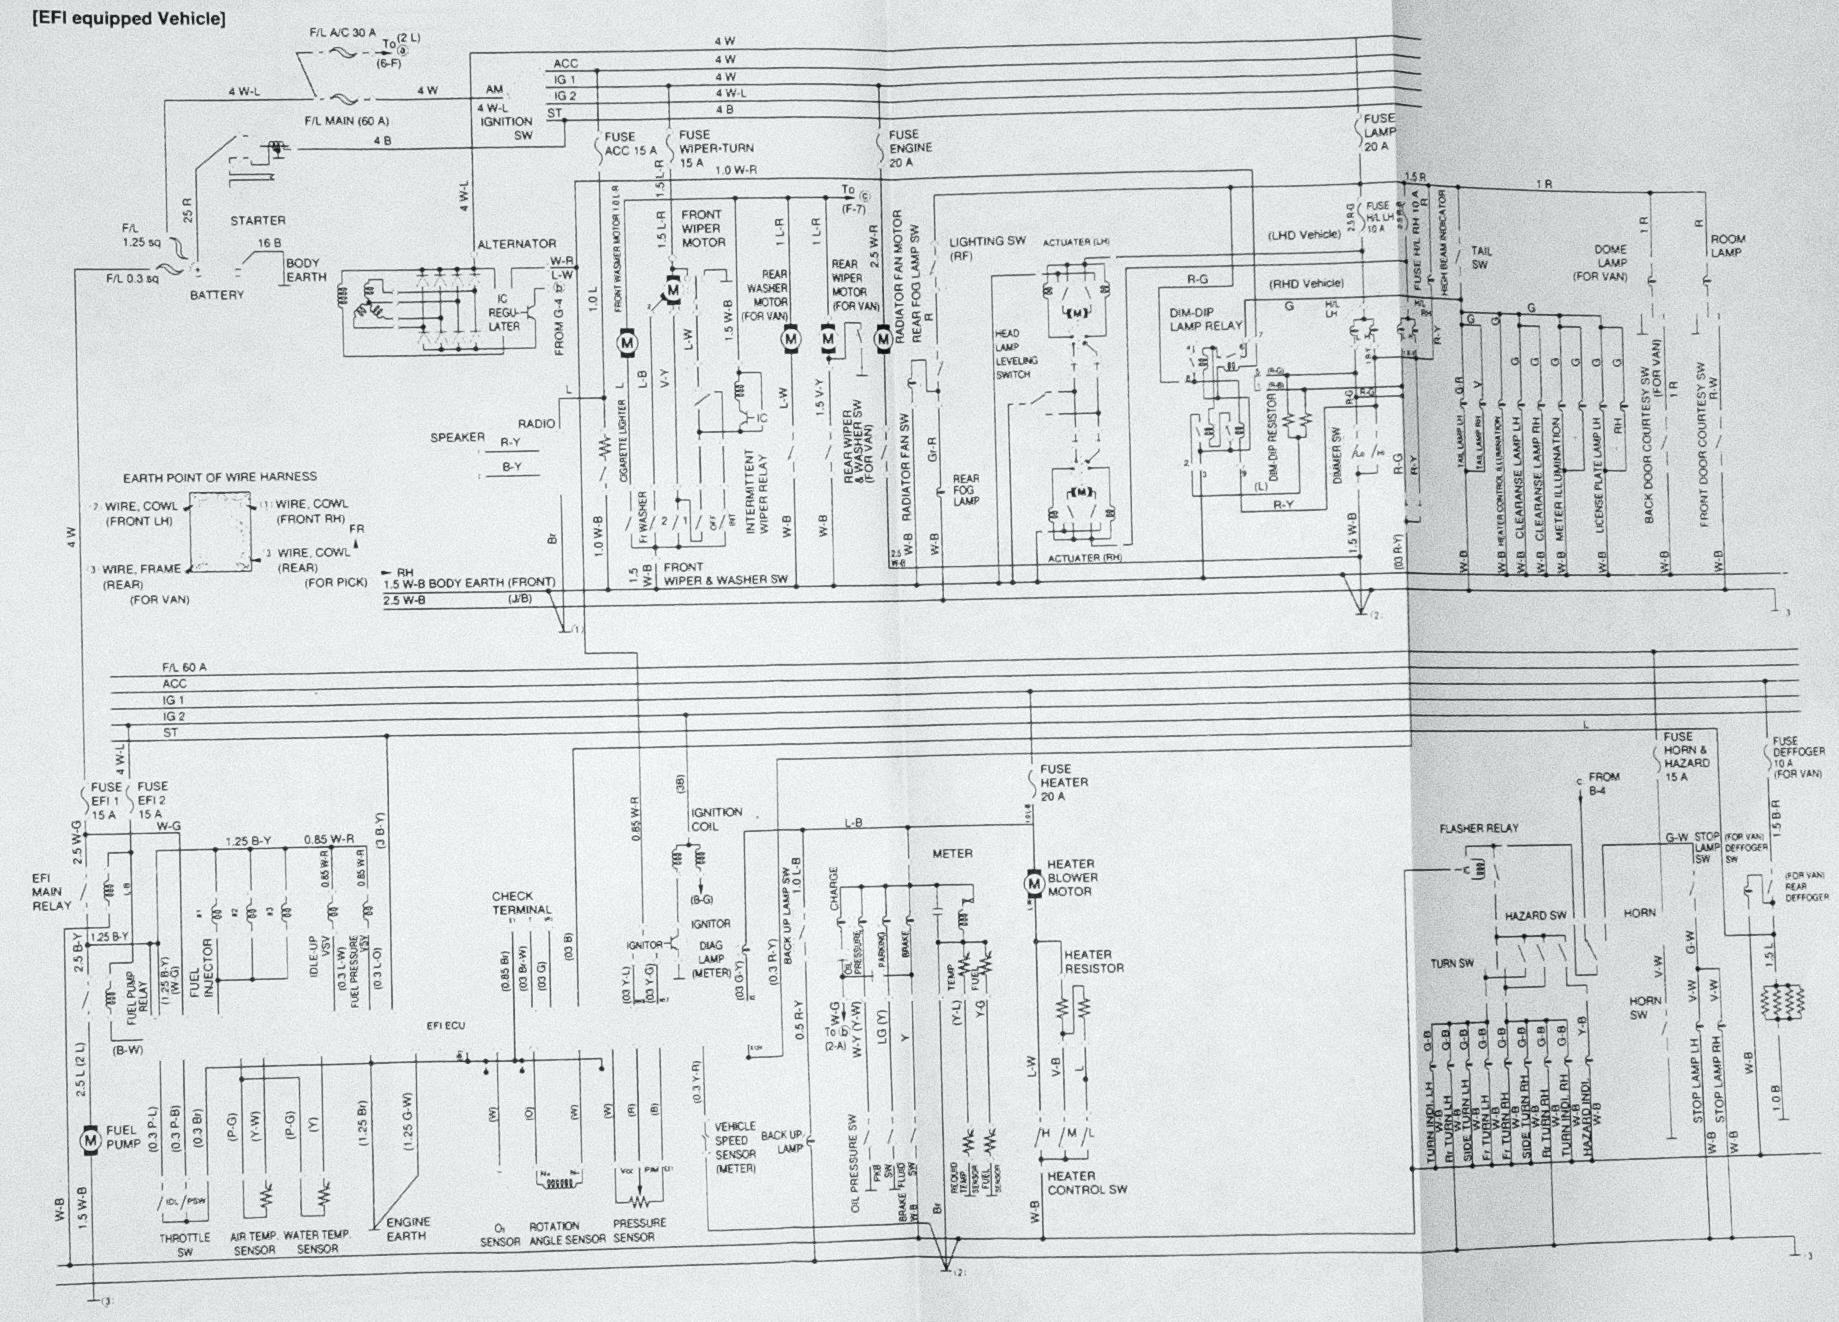 daihatsu hijet wiring diagram circuit connection diagram u2022 rh scooplocal co Wiring Schematic Symbols Home Electrical Wiring Diagrams